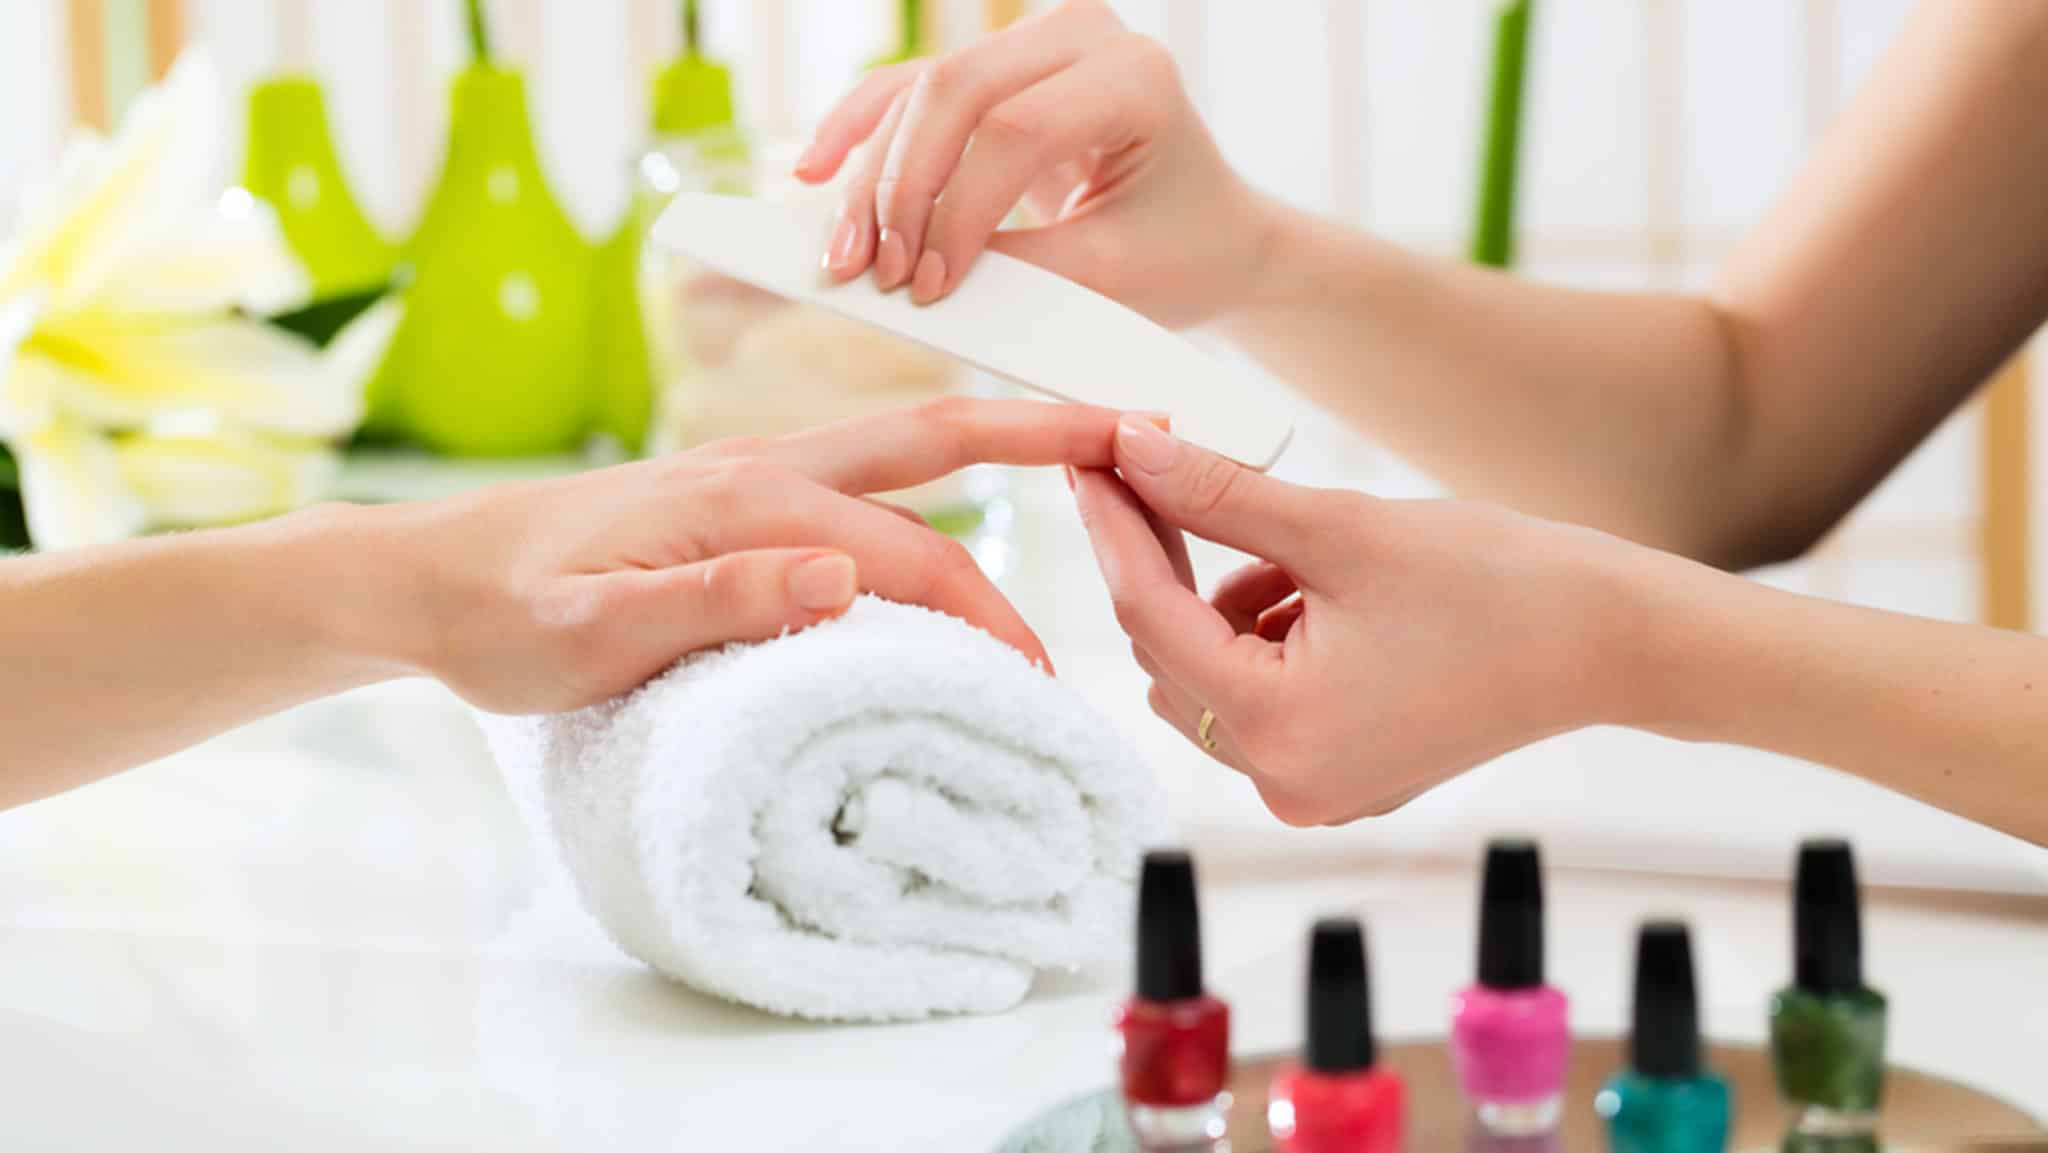 How to give yourself a manicure at home inlifehealthcare how to give yourself a manicure at home solutioingenieria Image collections